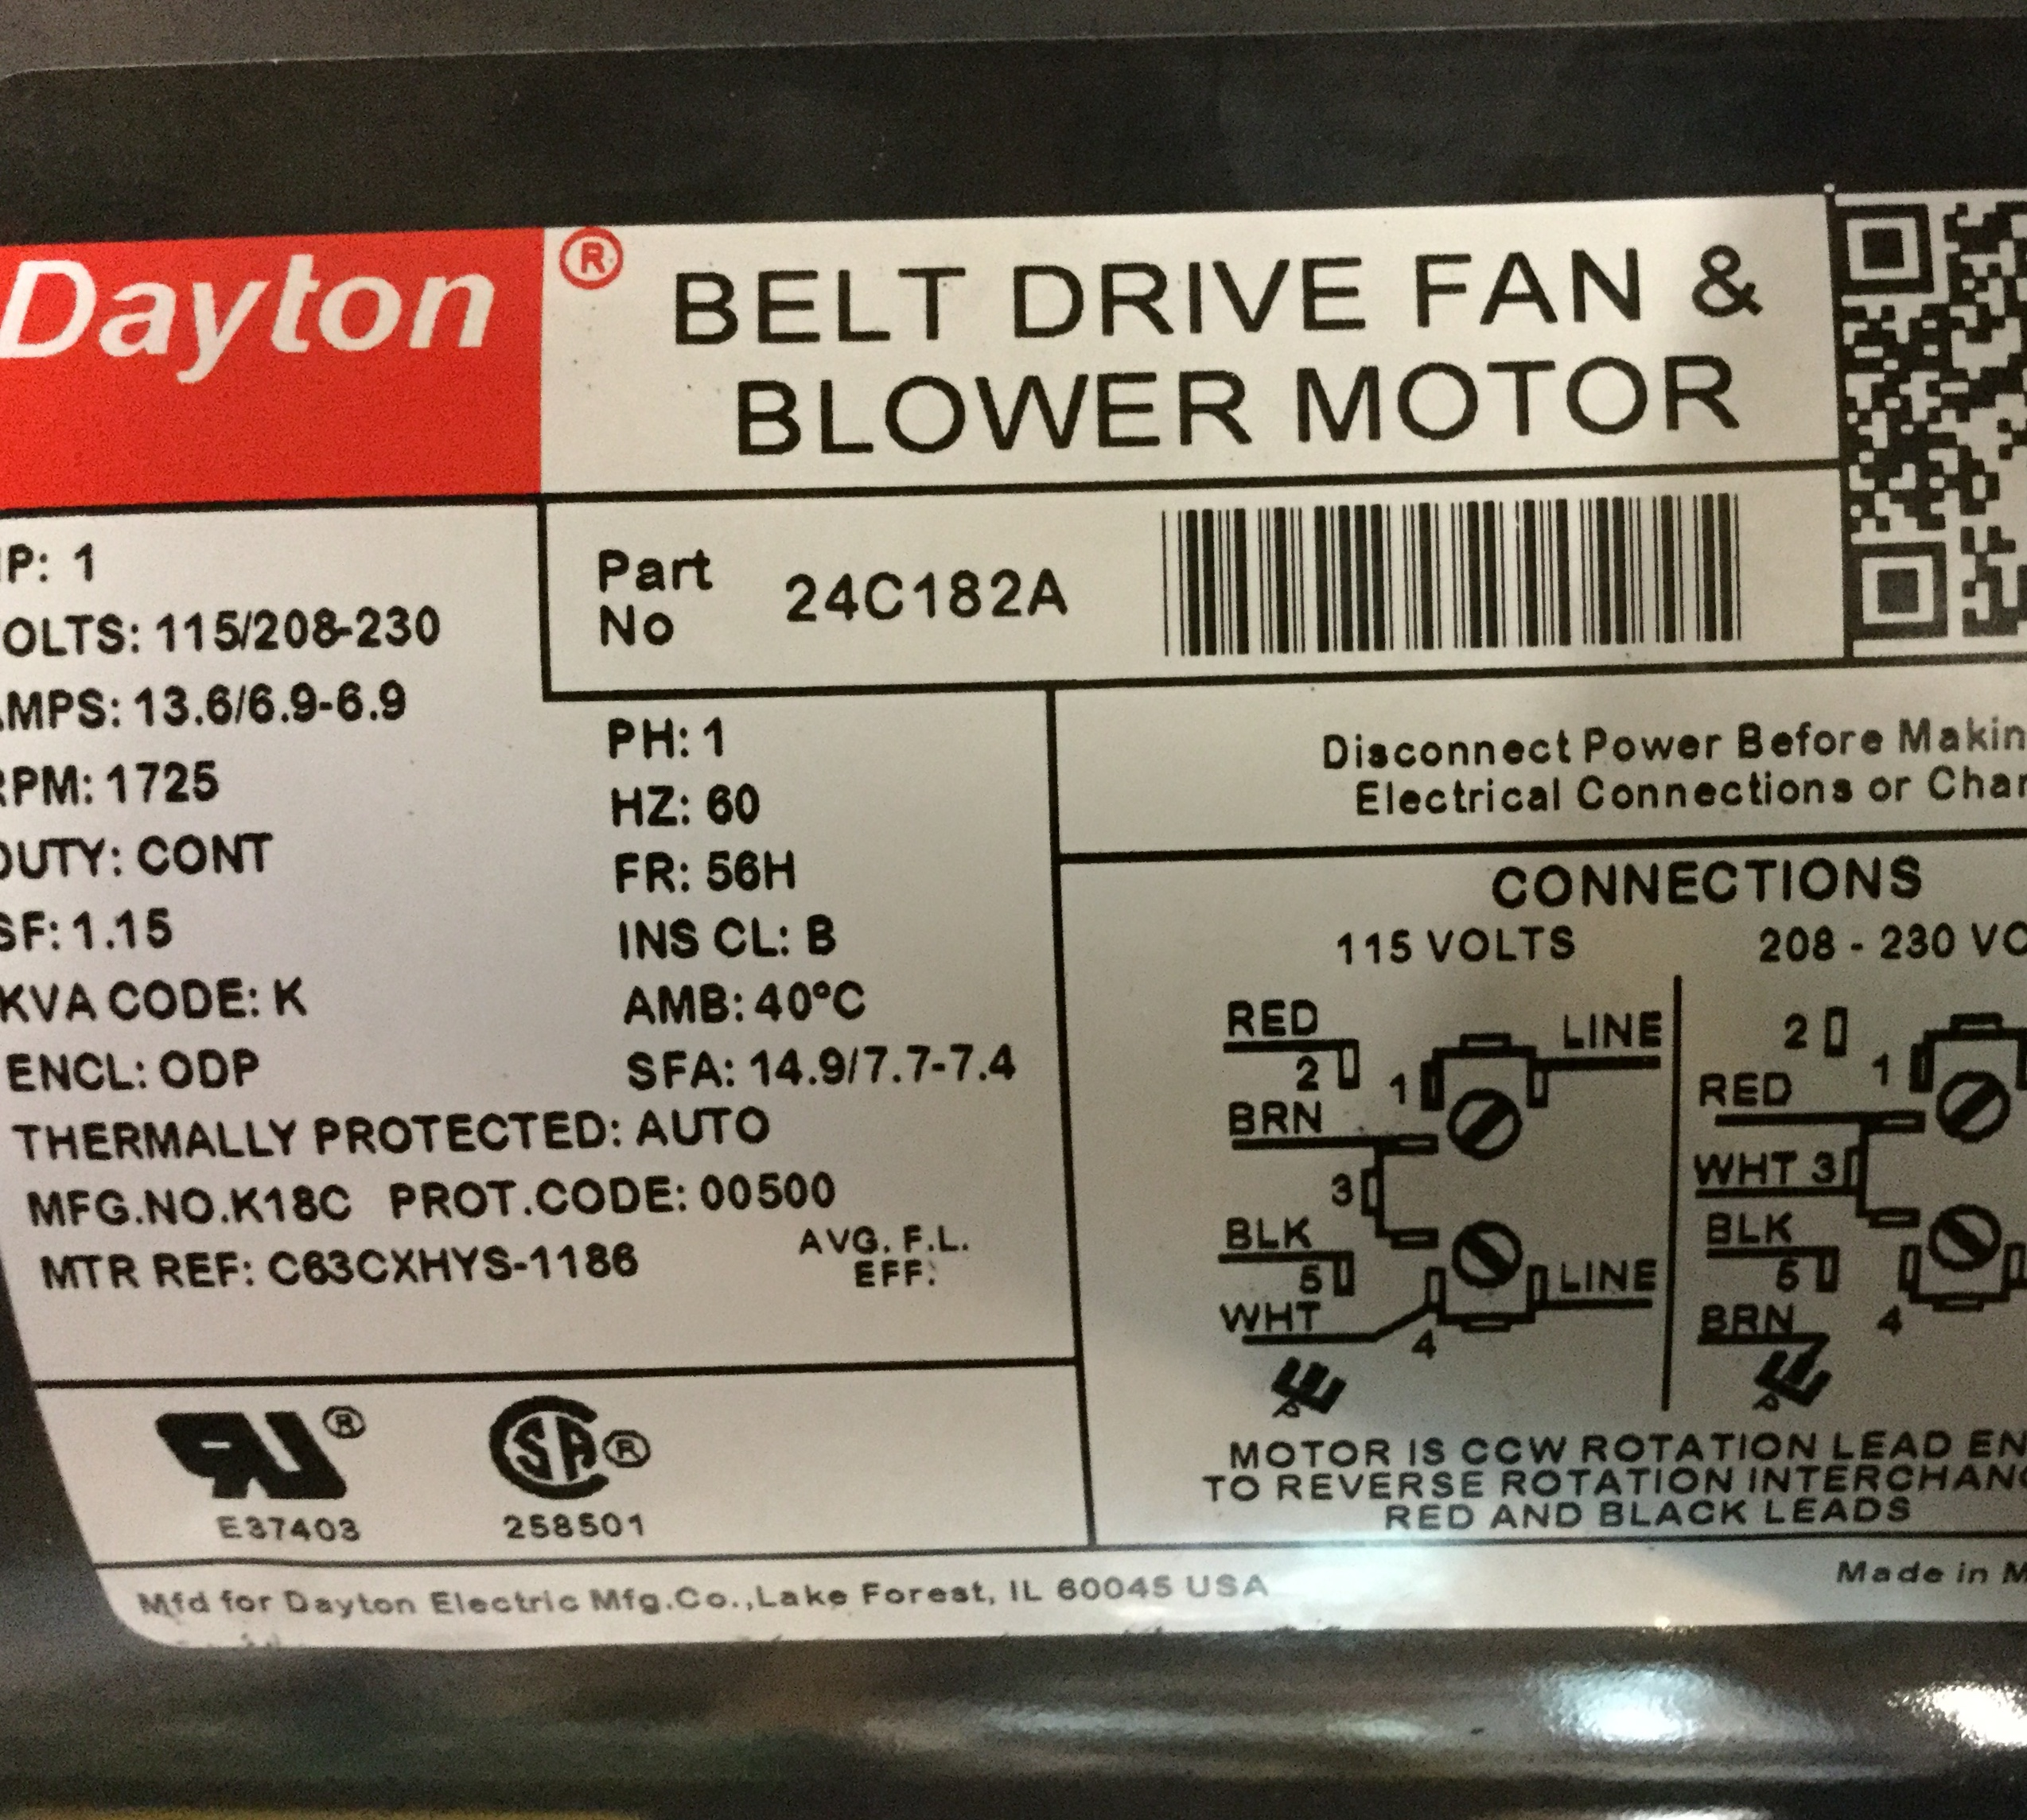 I Just Received A 1 Hp Dayton 24c182 A Single Phase Replacement Power Source For My Old Rockwell Delta 17 600 Variable